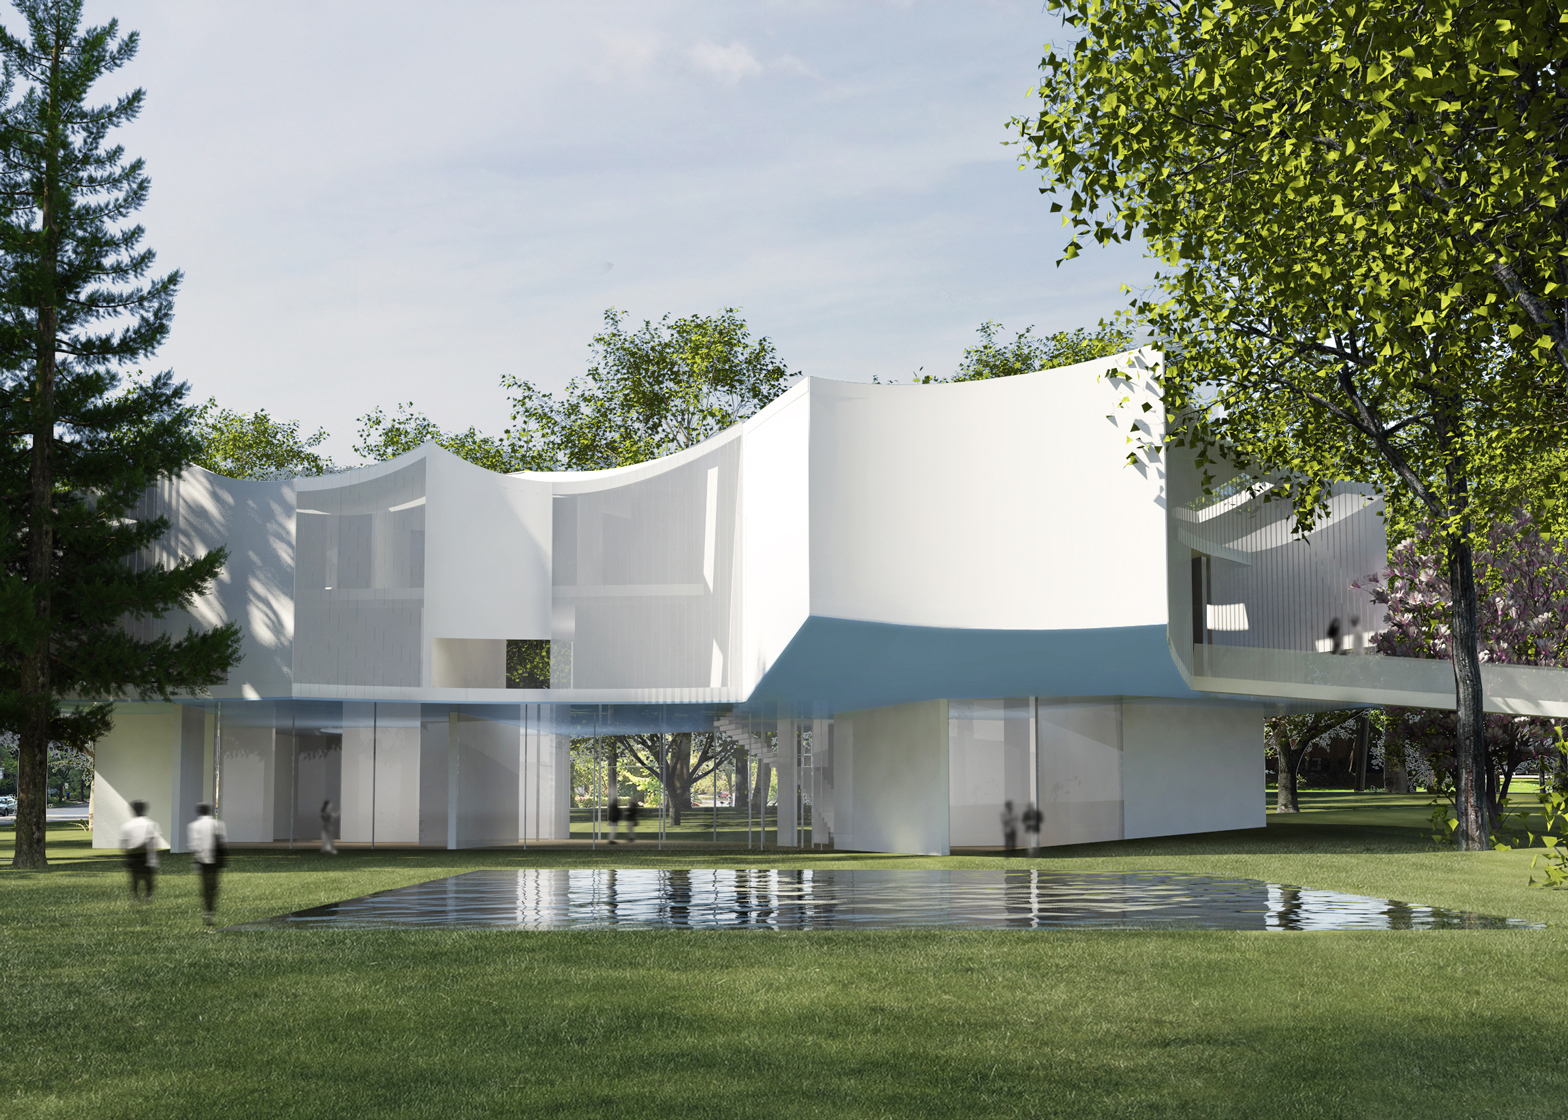 Steven holl architects e architect for Holl image